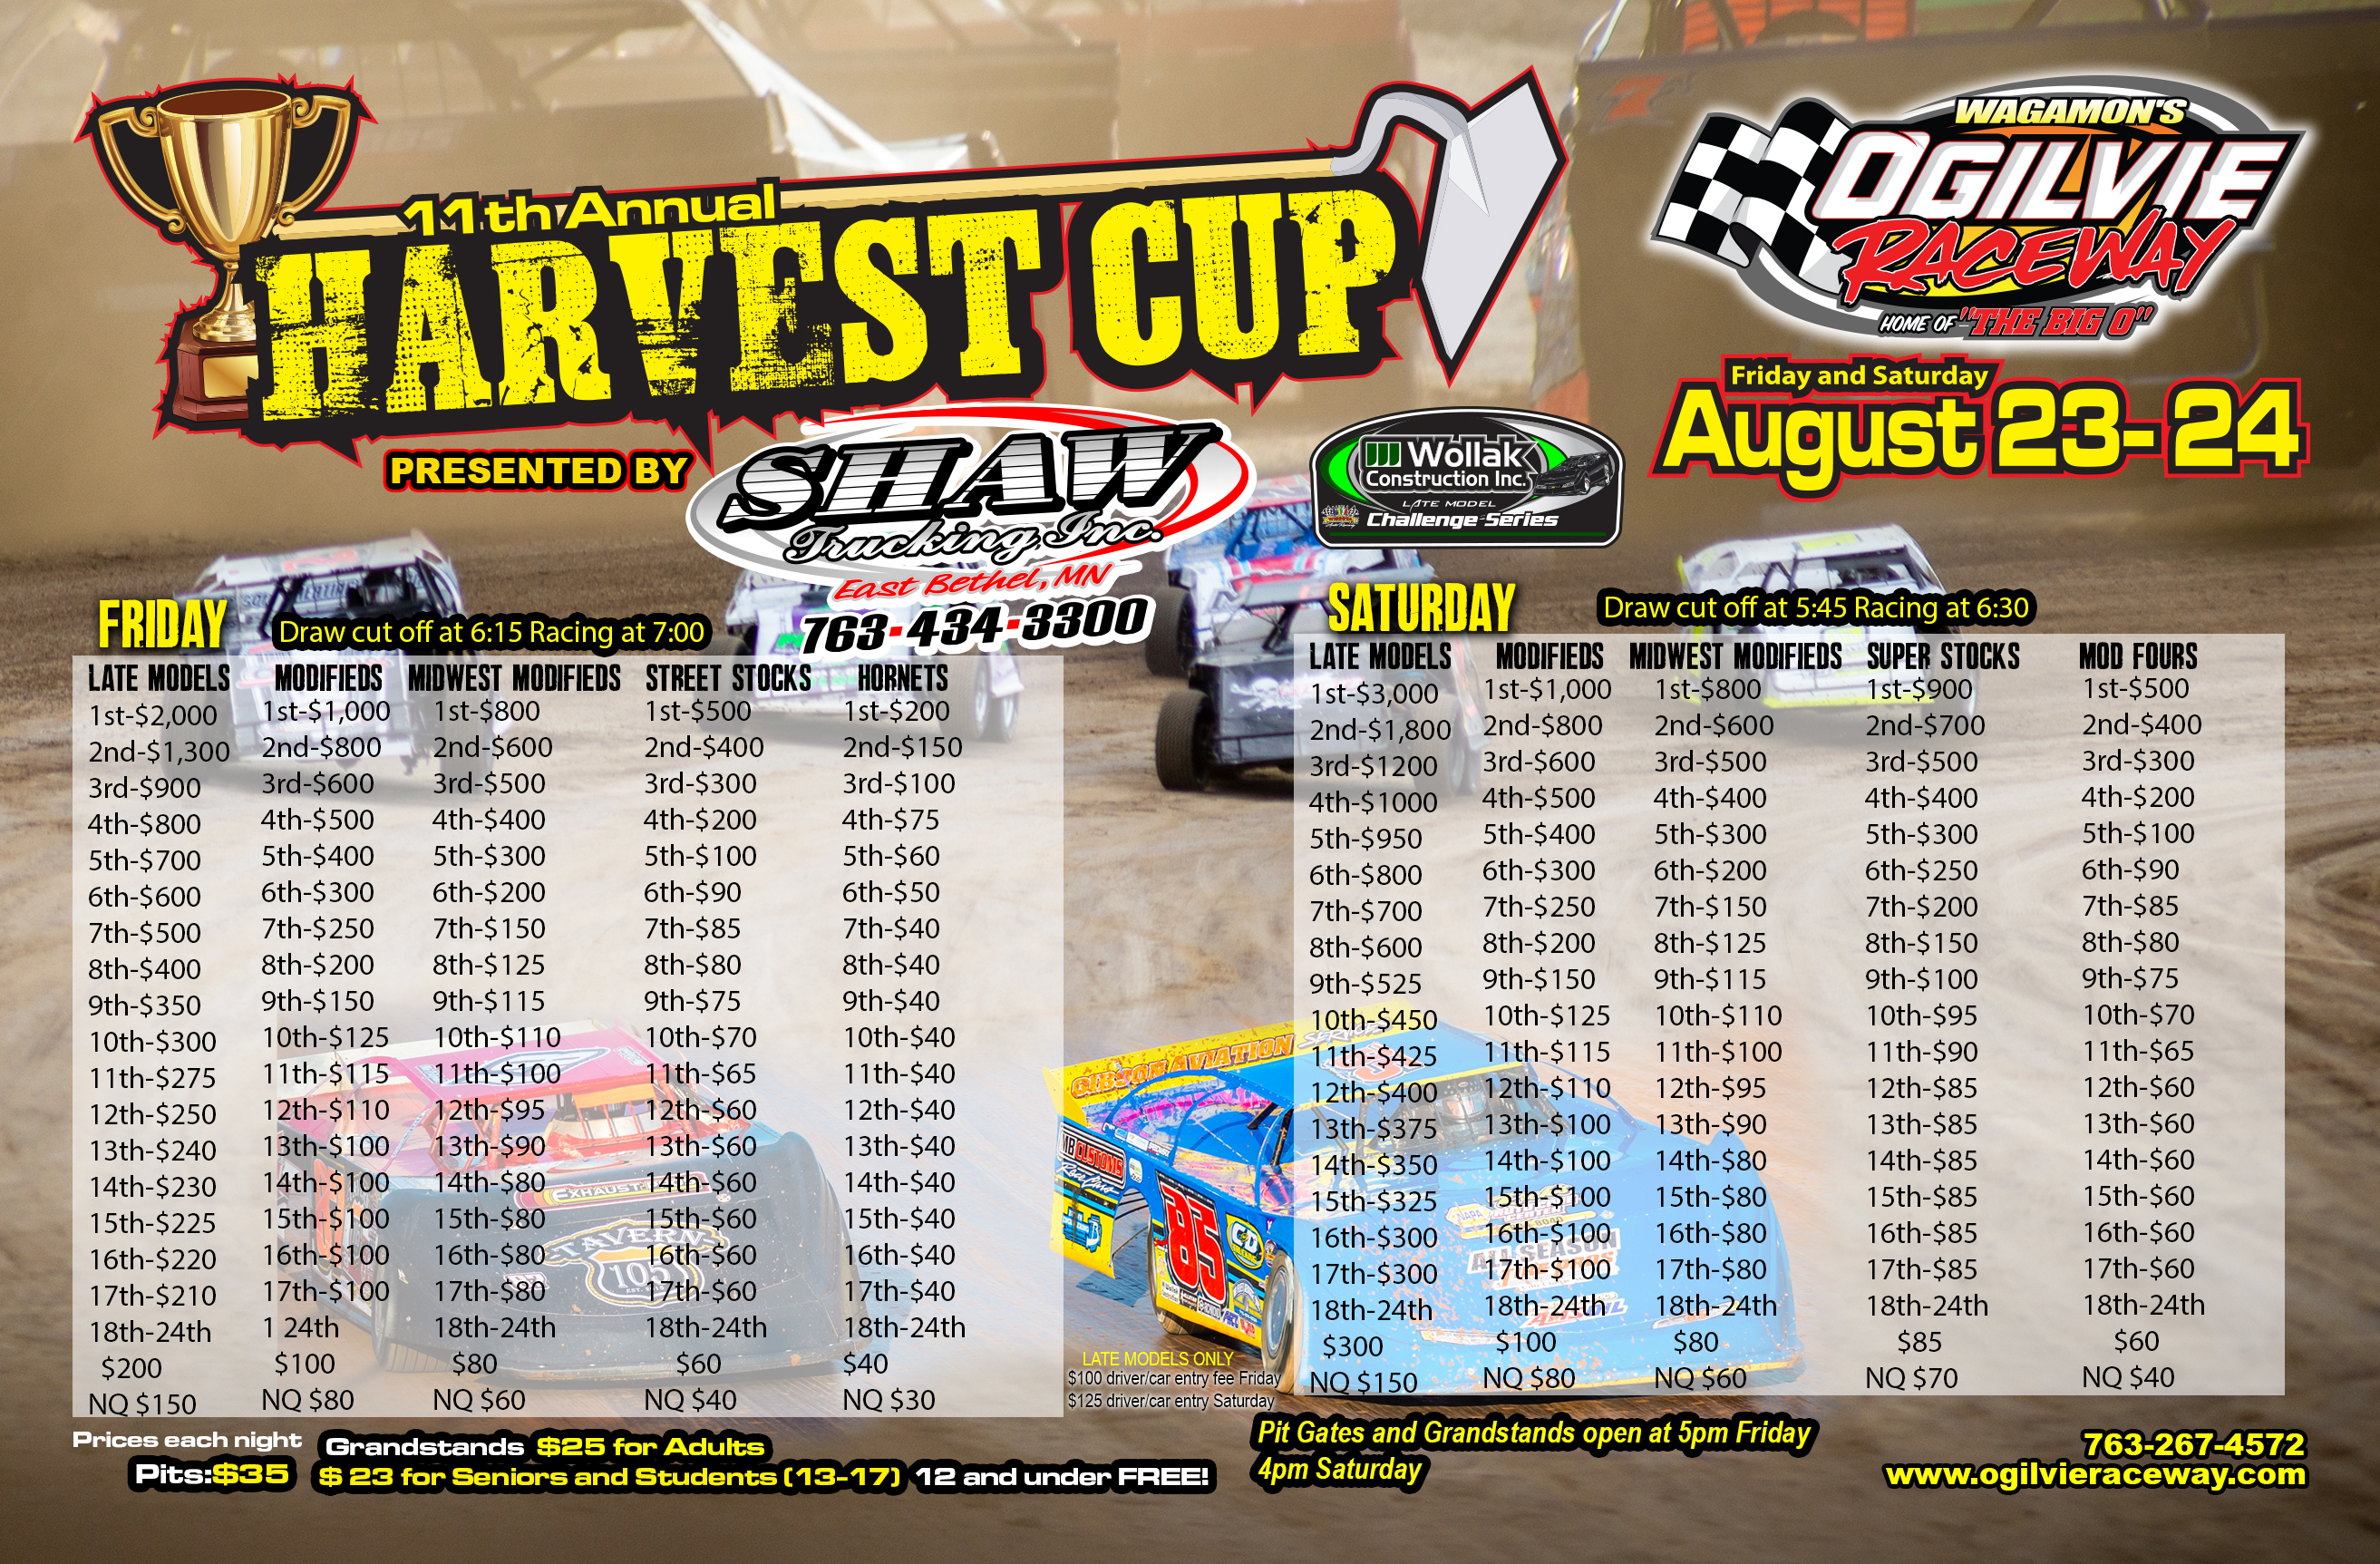 Late Model Challenge Series at the Harvest Cup Friday & Saturday, Aug. 23-24